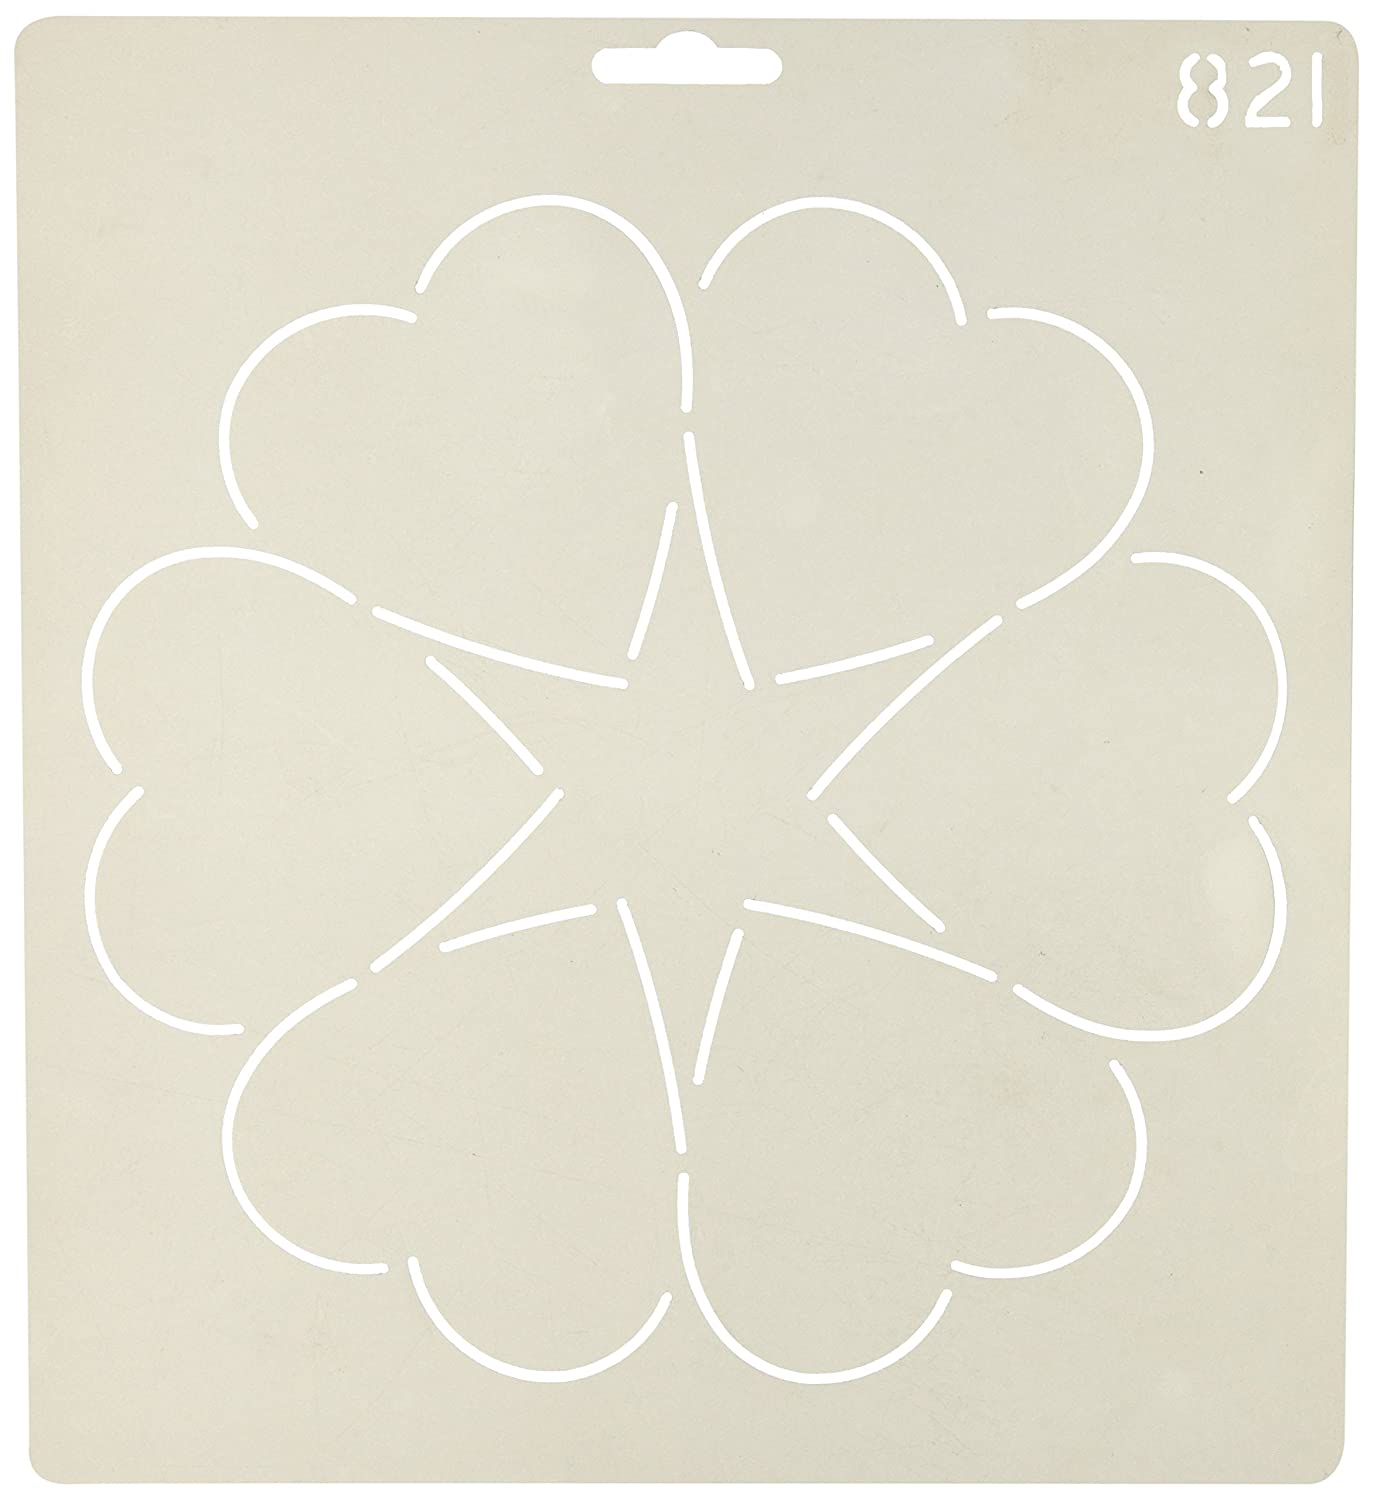 Quilting Creations Ring of Hearts Quilt Stencil, 8 8 821QC